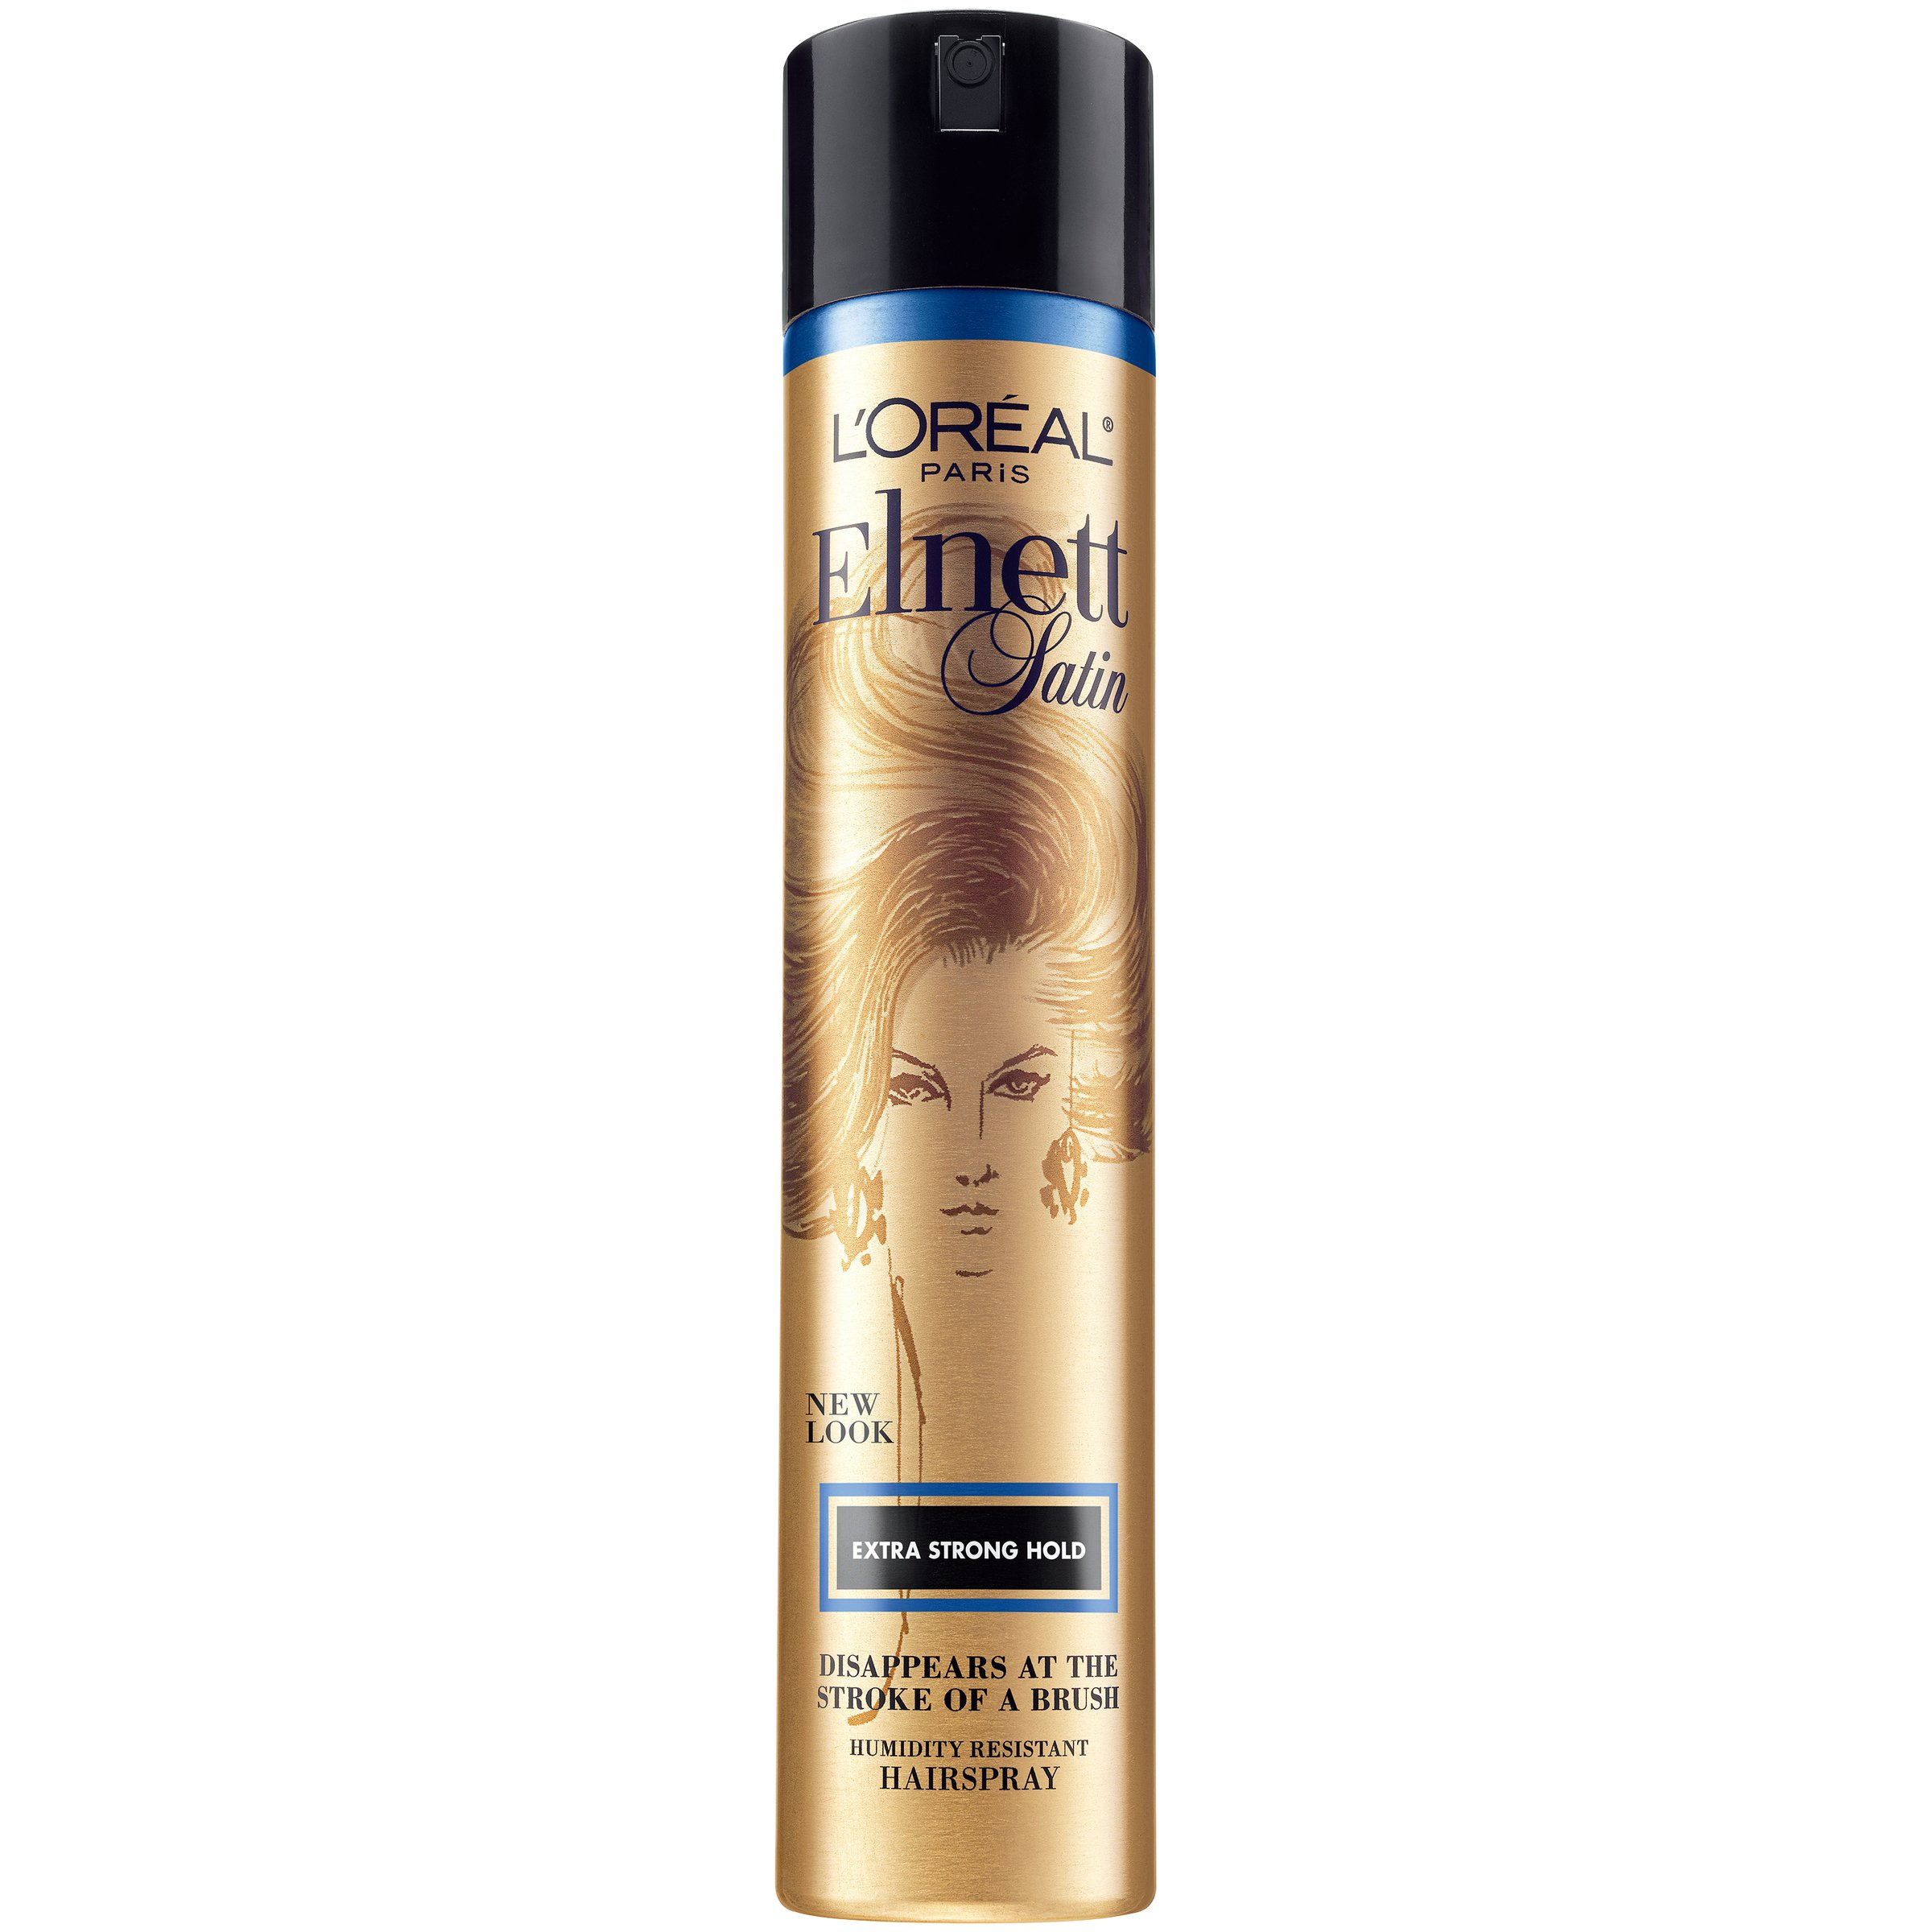 L'Oreal Paris Elnett Satin Extra Strong Hold Hairspray 11 Ounce (1 Count) (Packaging May Vary) by L'Oreal Paris